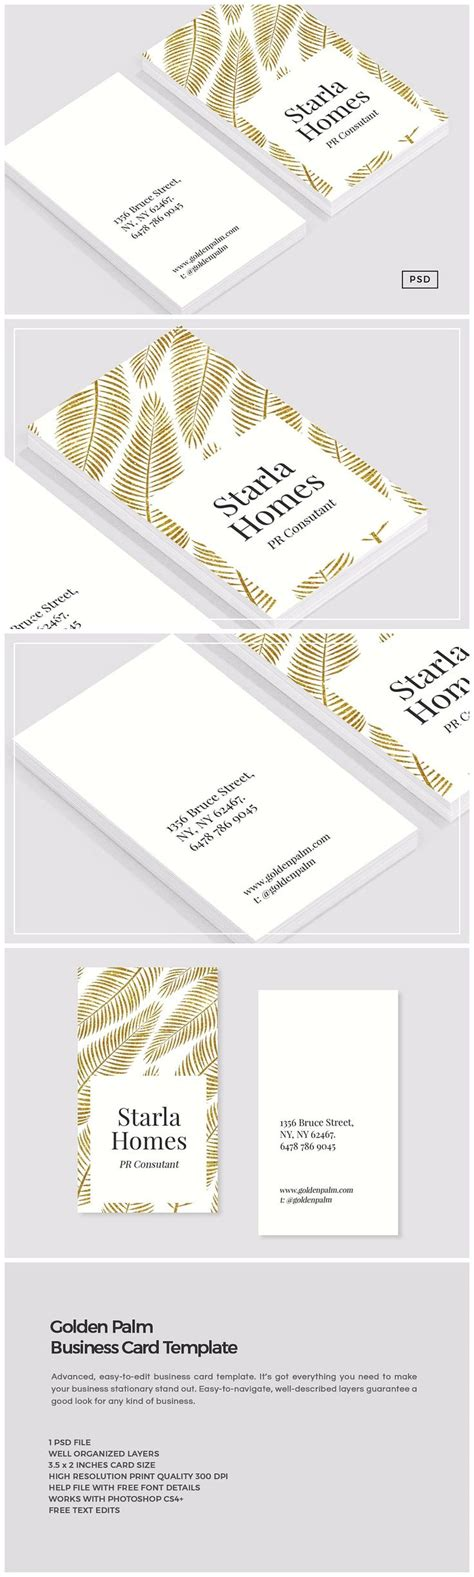 business card template for printer how can i make business cards at home for free free